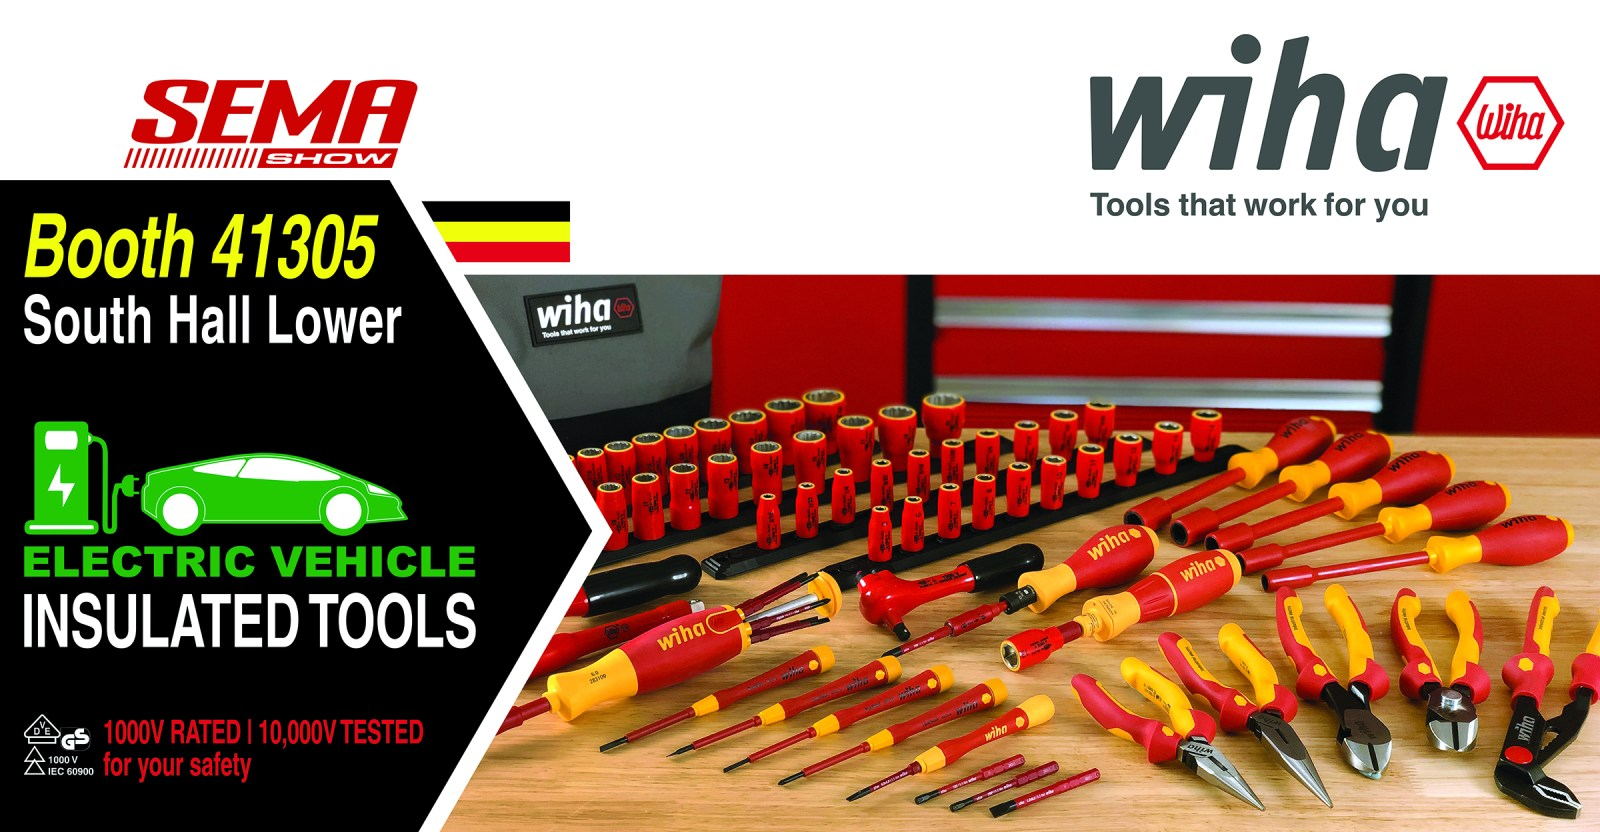 Wiha Tools SEMA Preparation Banner